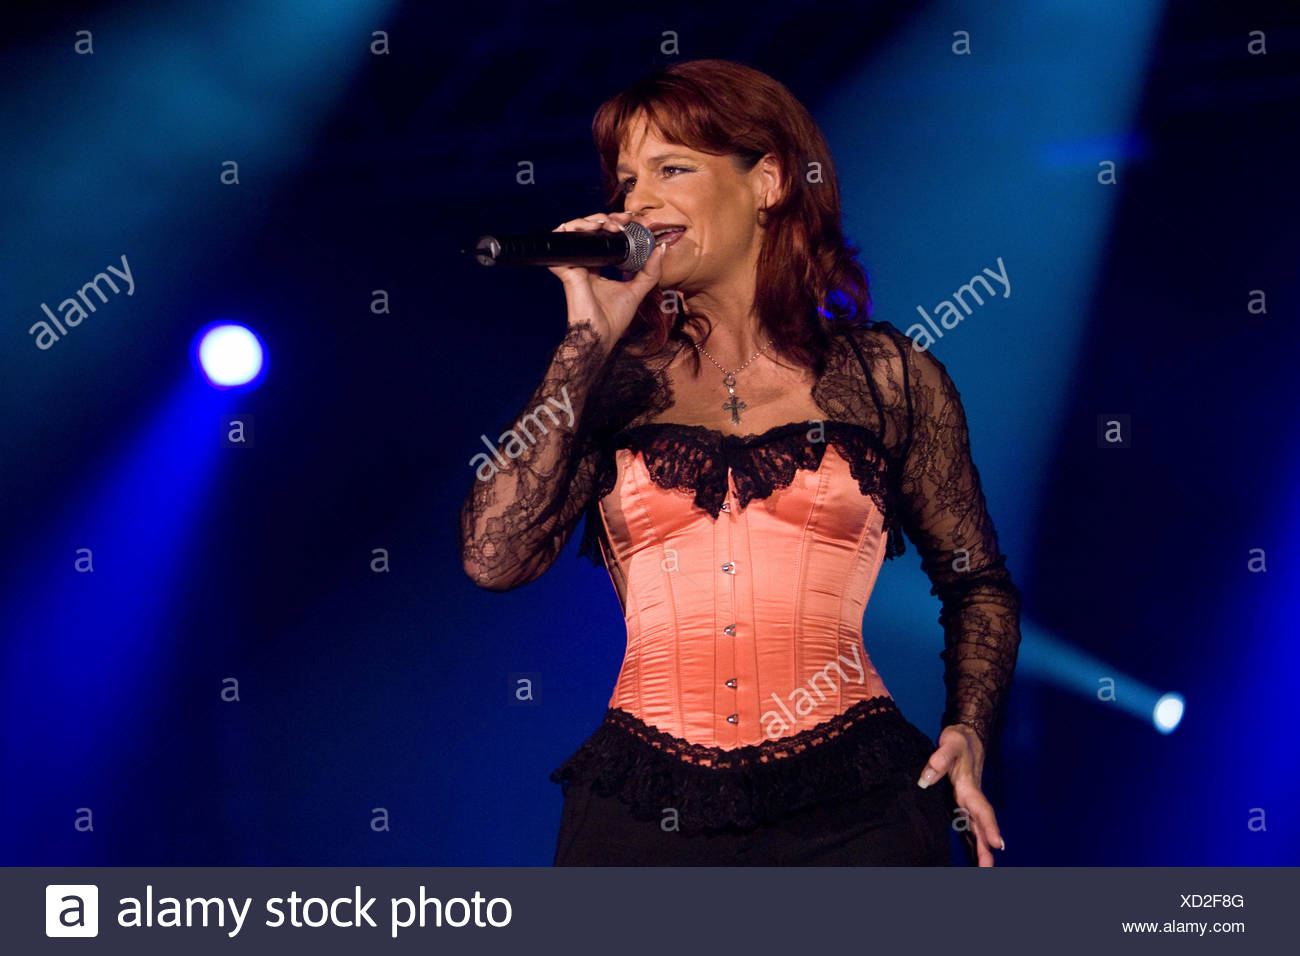 German pop singer Andrea Berg live in the Sursee civic hall, Sursee, Switzerland Stock Photo